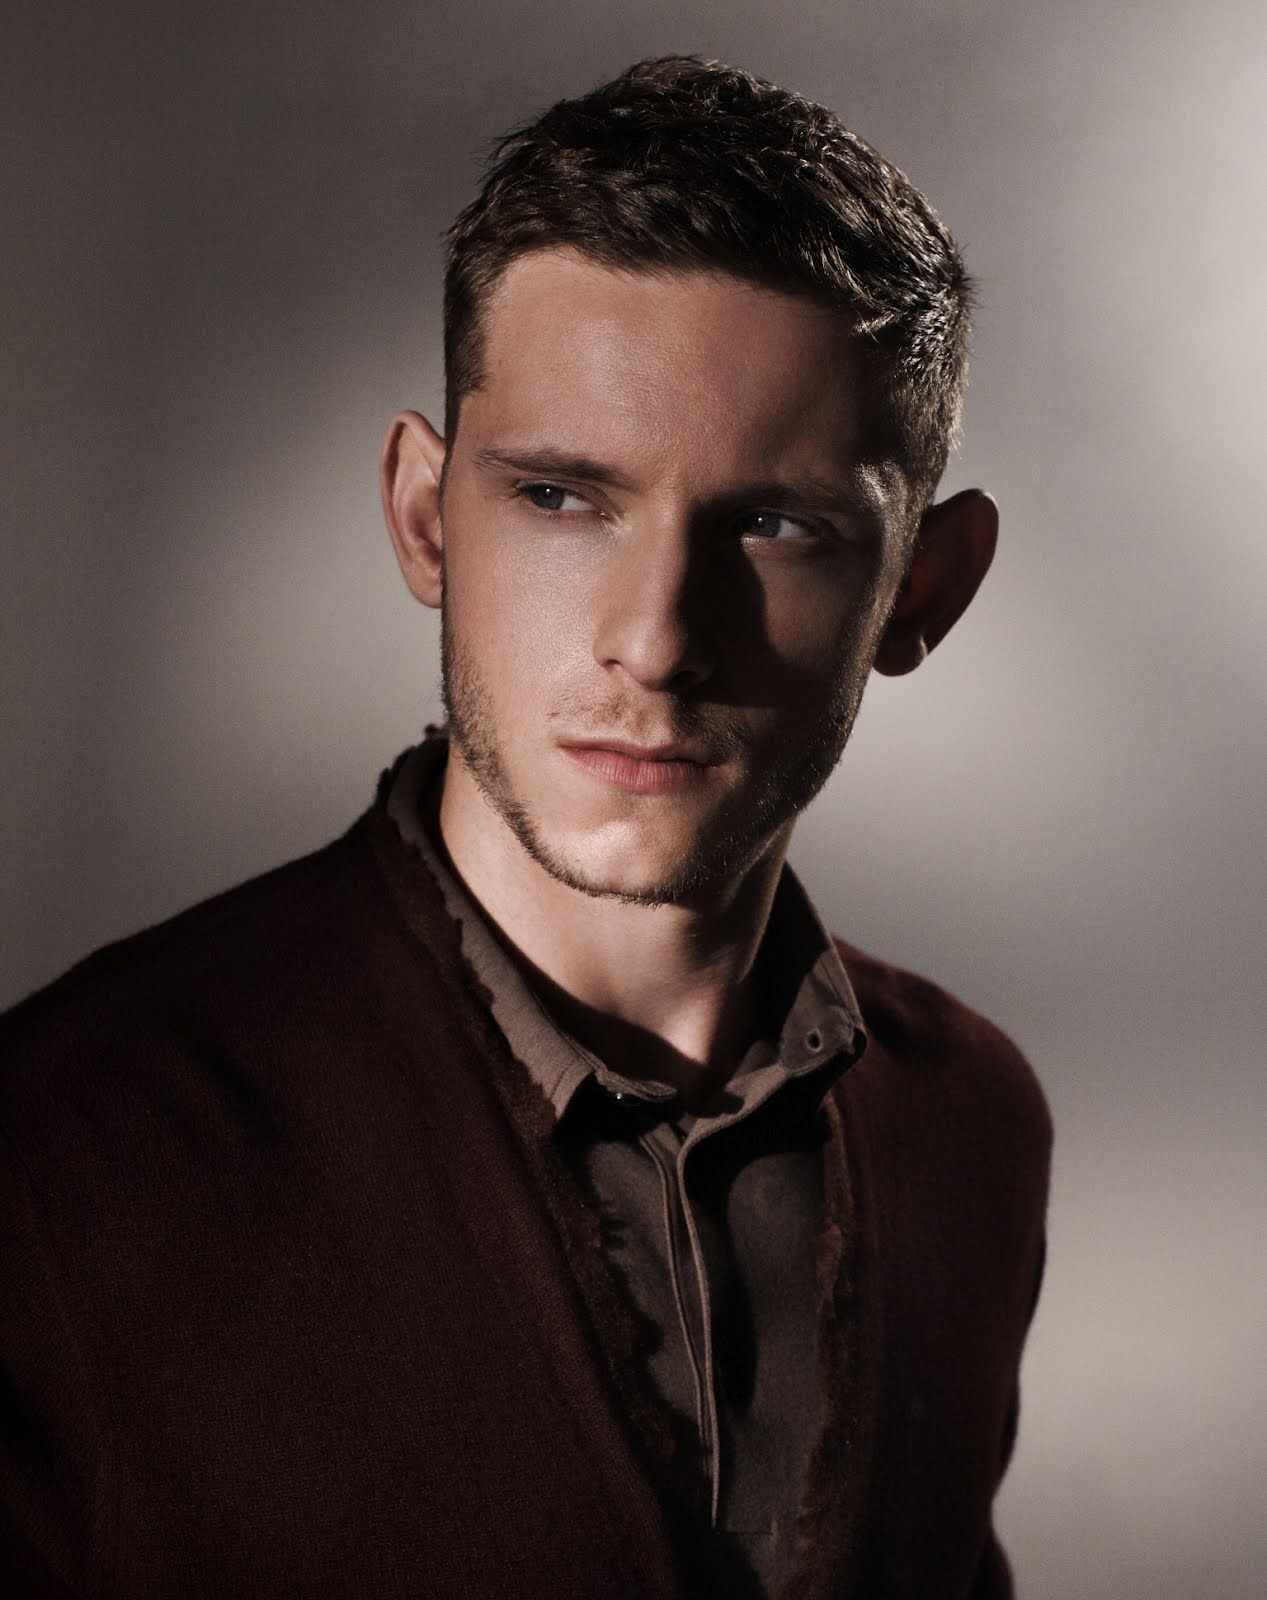 jamie bell england from the young chap in billy elliot to a jamie bell england from the young chap in billy elliot to a dashing